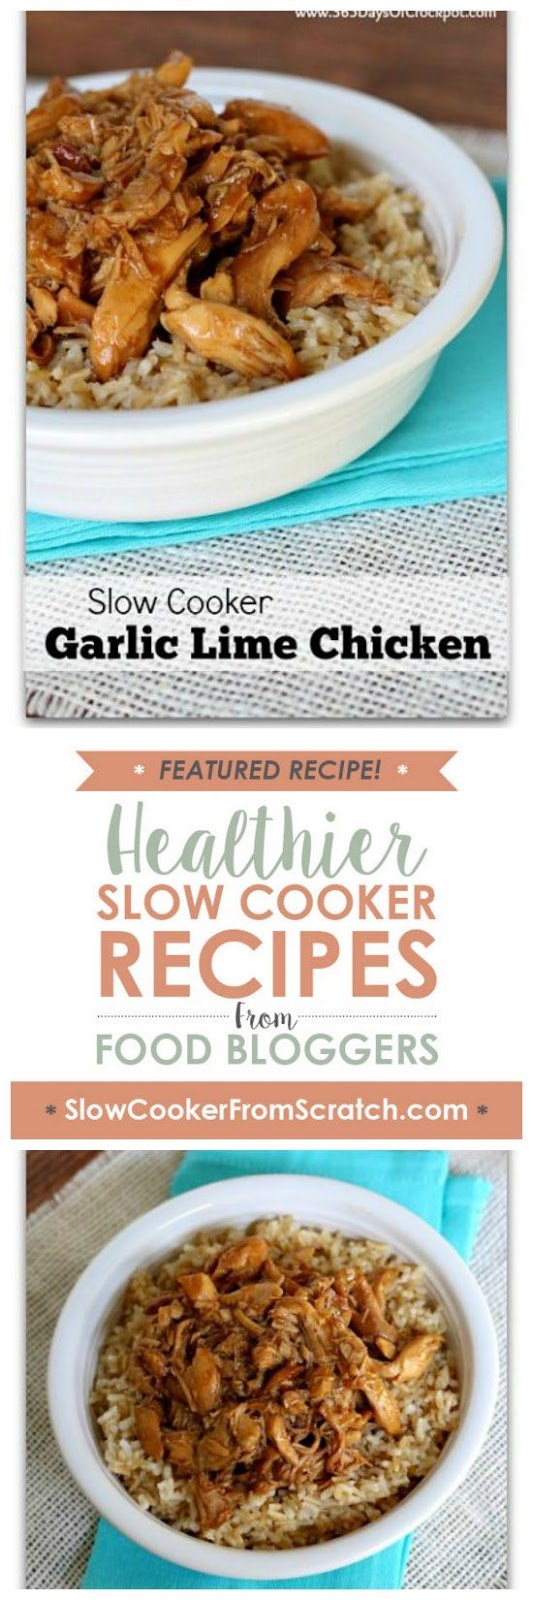 Slow Cooker Garlic Lime Chicken from 365 Days of Slow Cooking featured on SlowCookerFromScratch.com